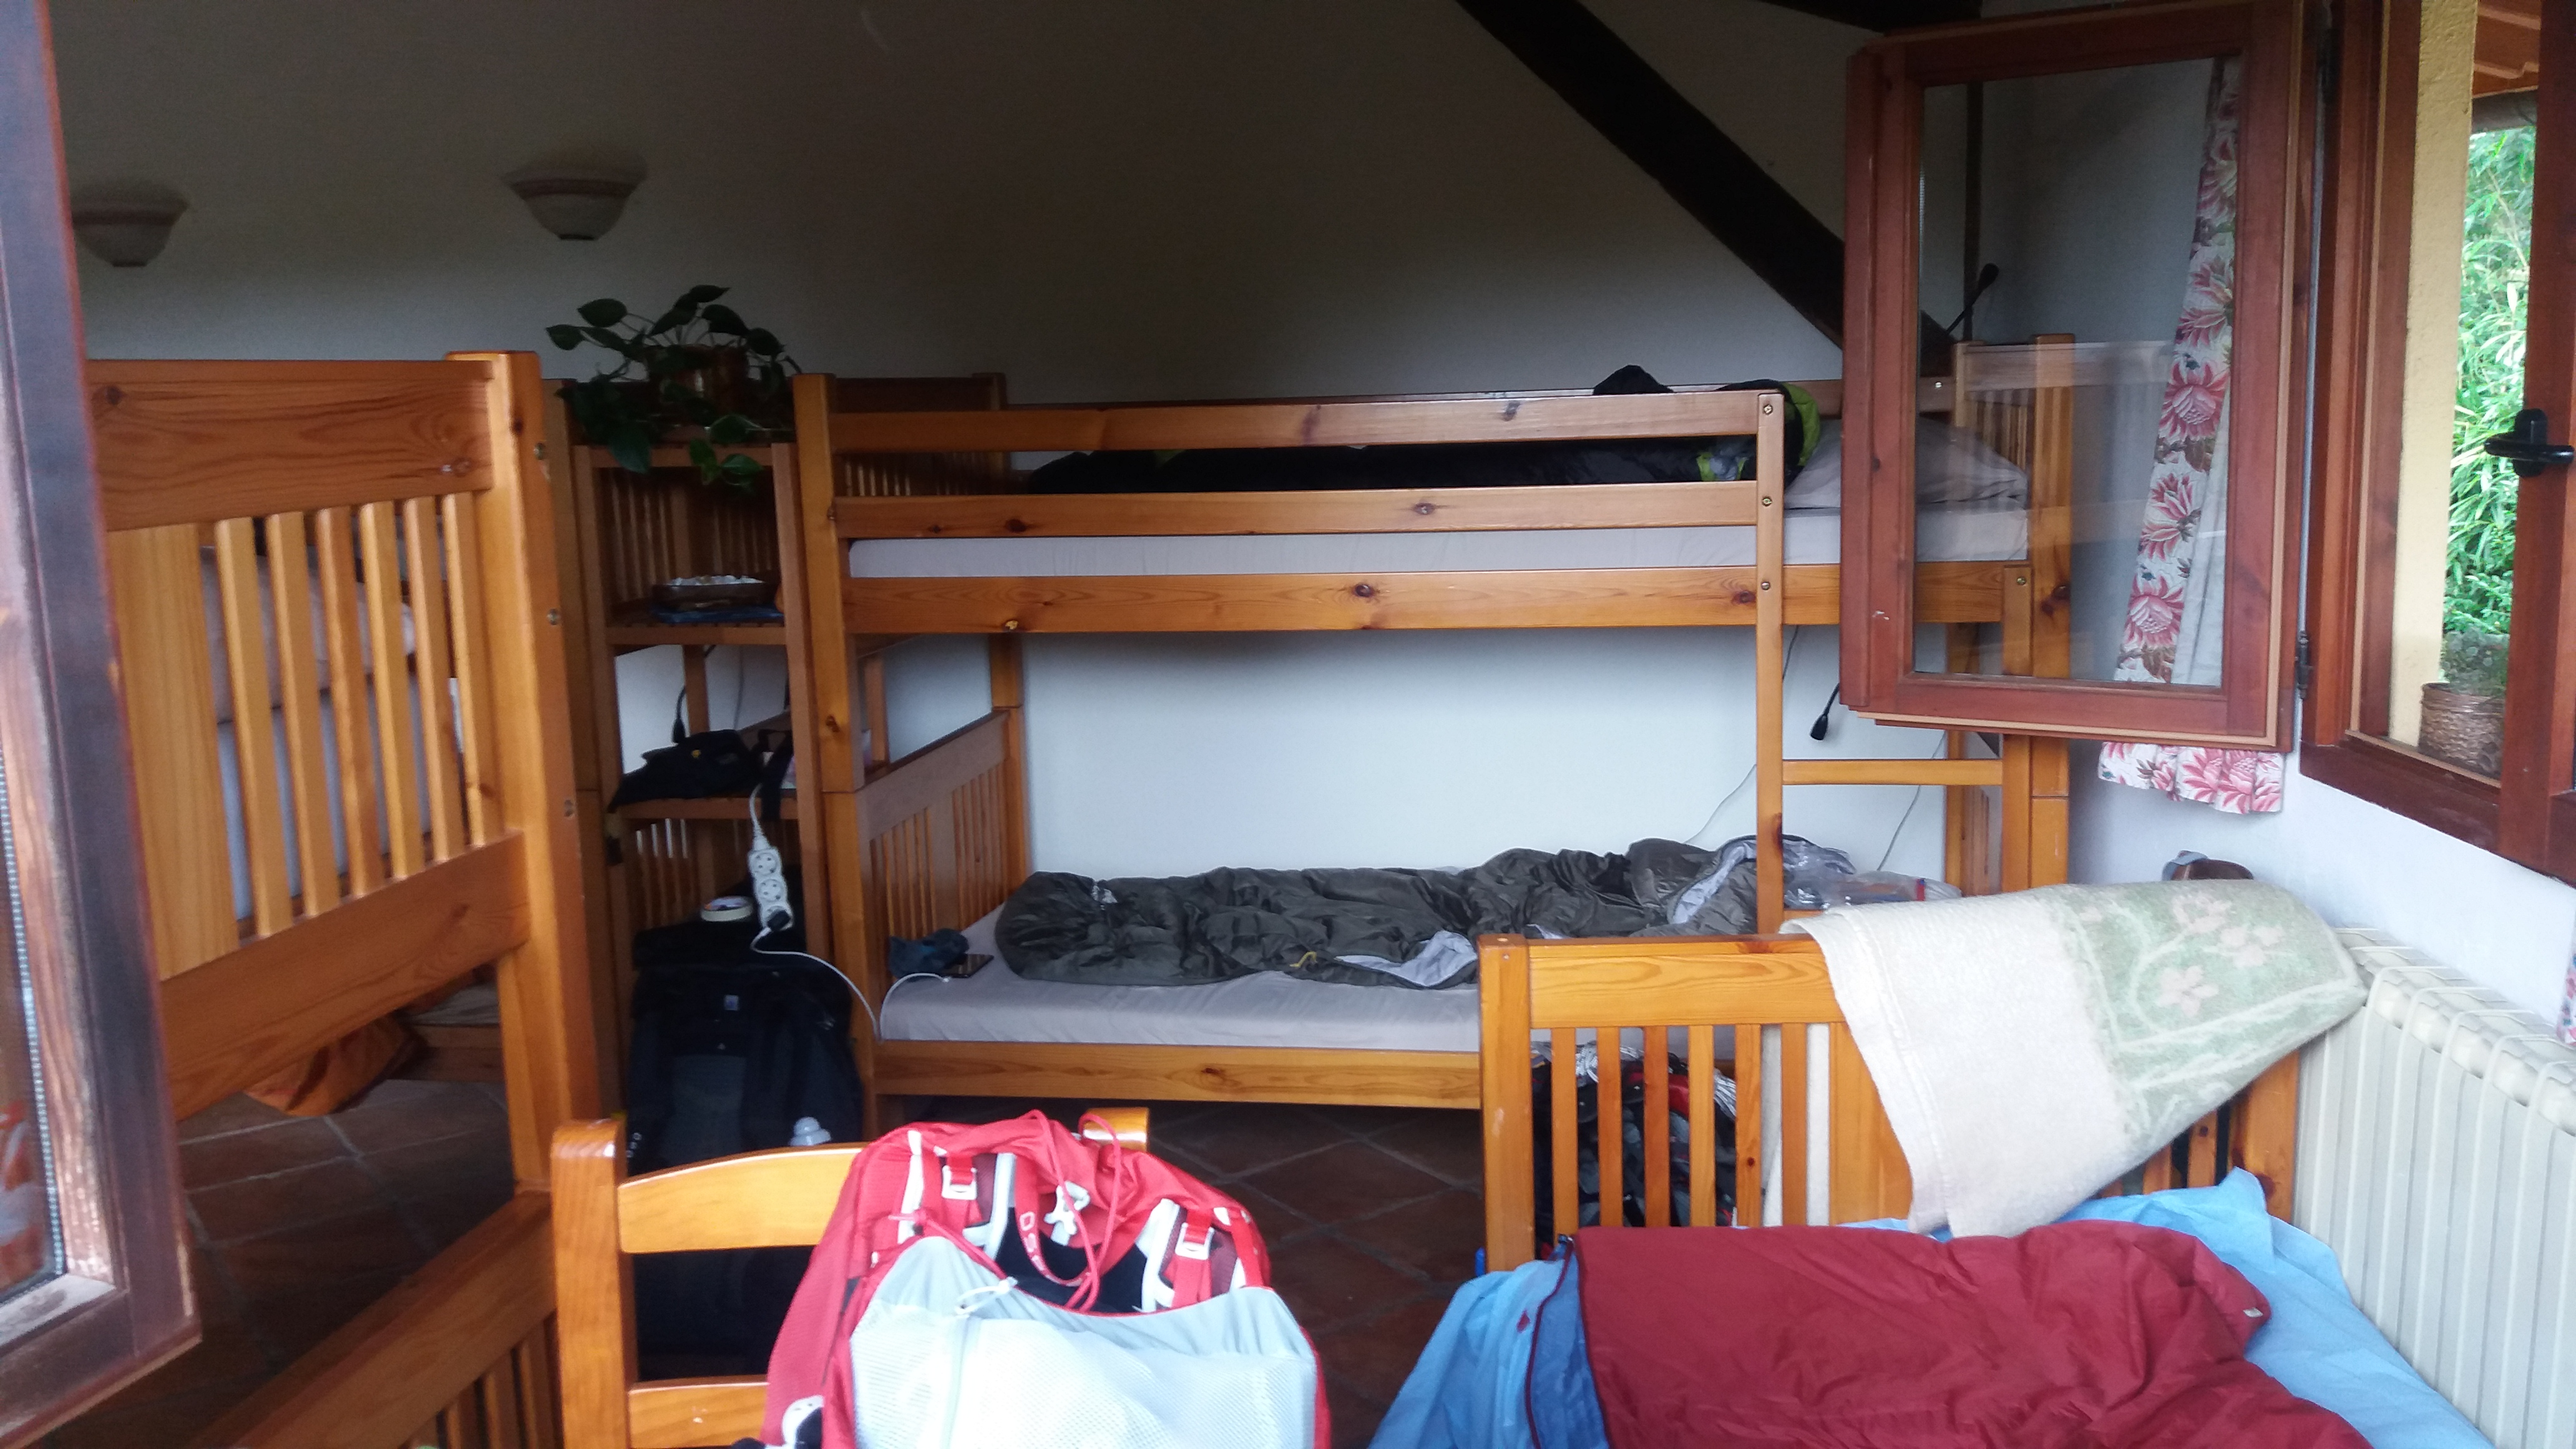 Cosy sleeping place with the 12 tribes